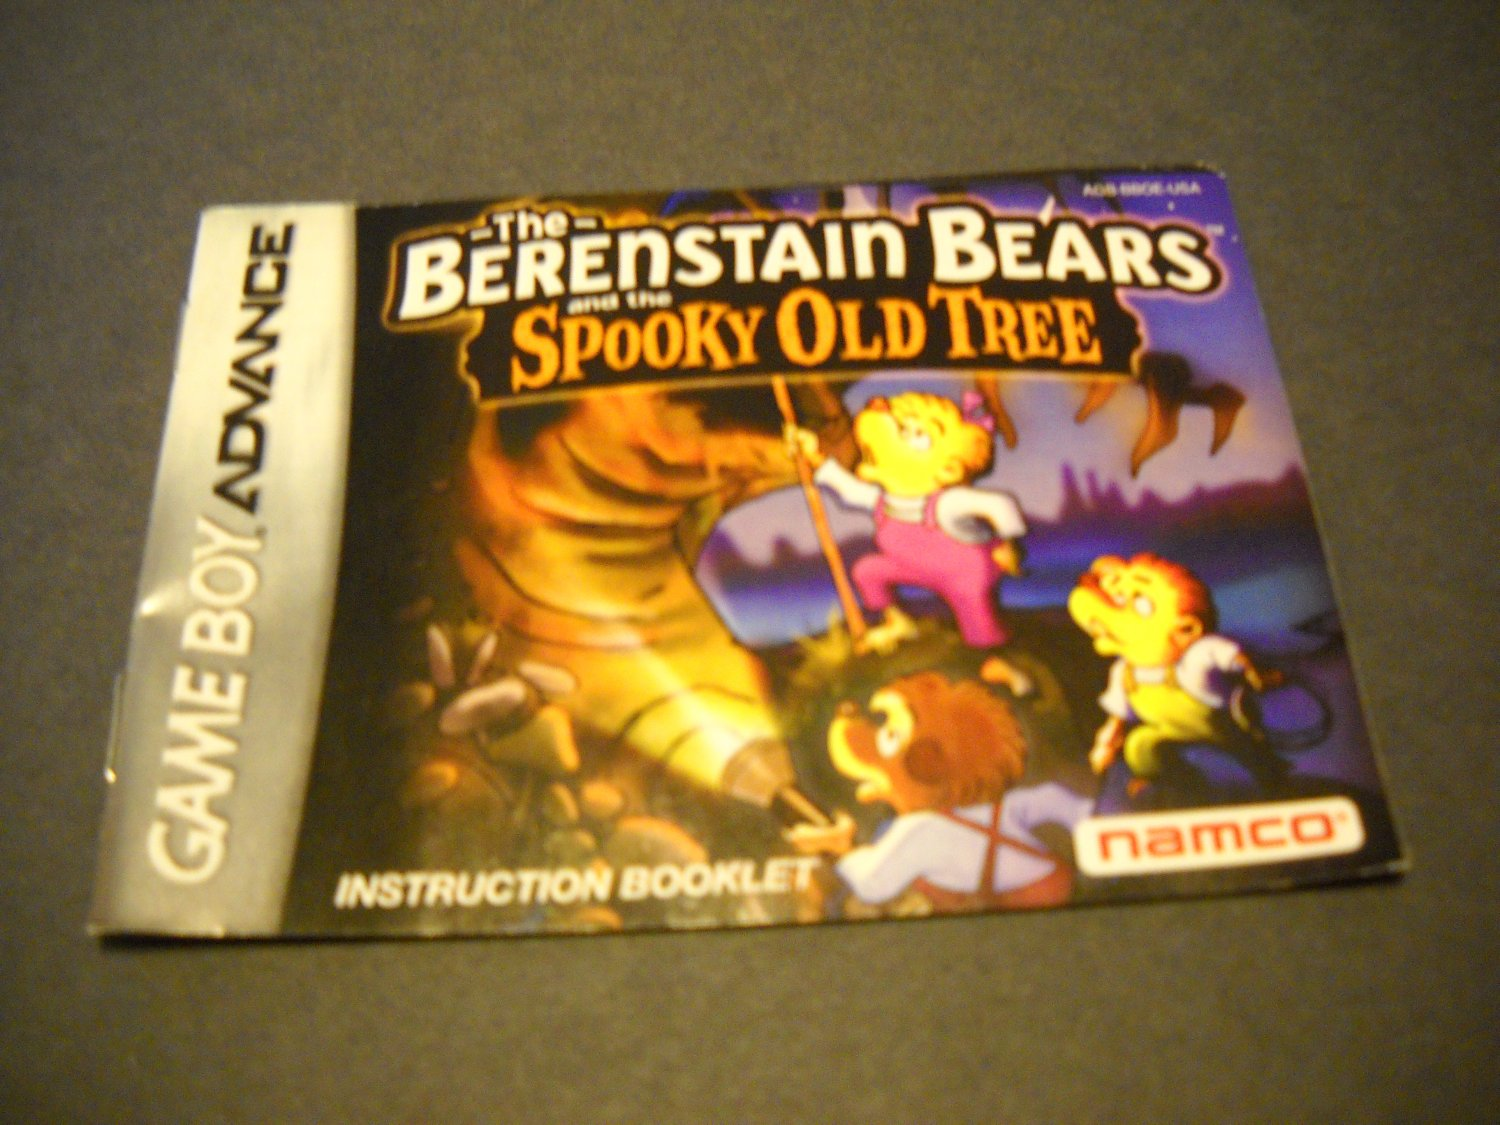 Manual ONLY ~  for The Berenstain Bears and the Spooky Old Tree  Gameboy Advance